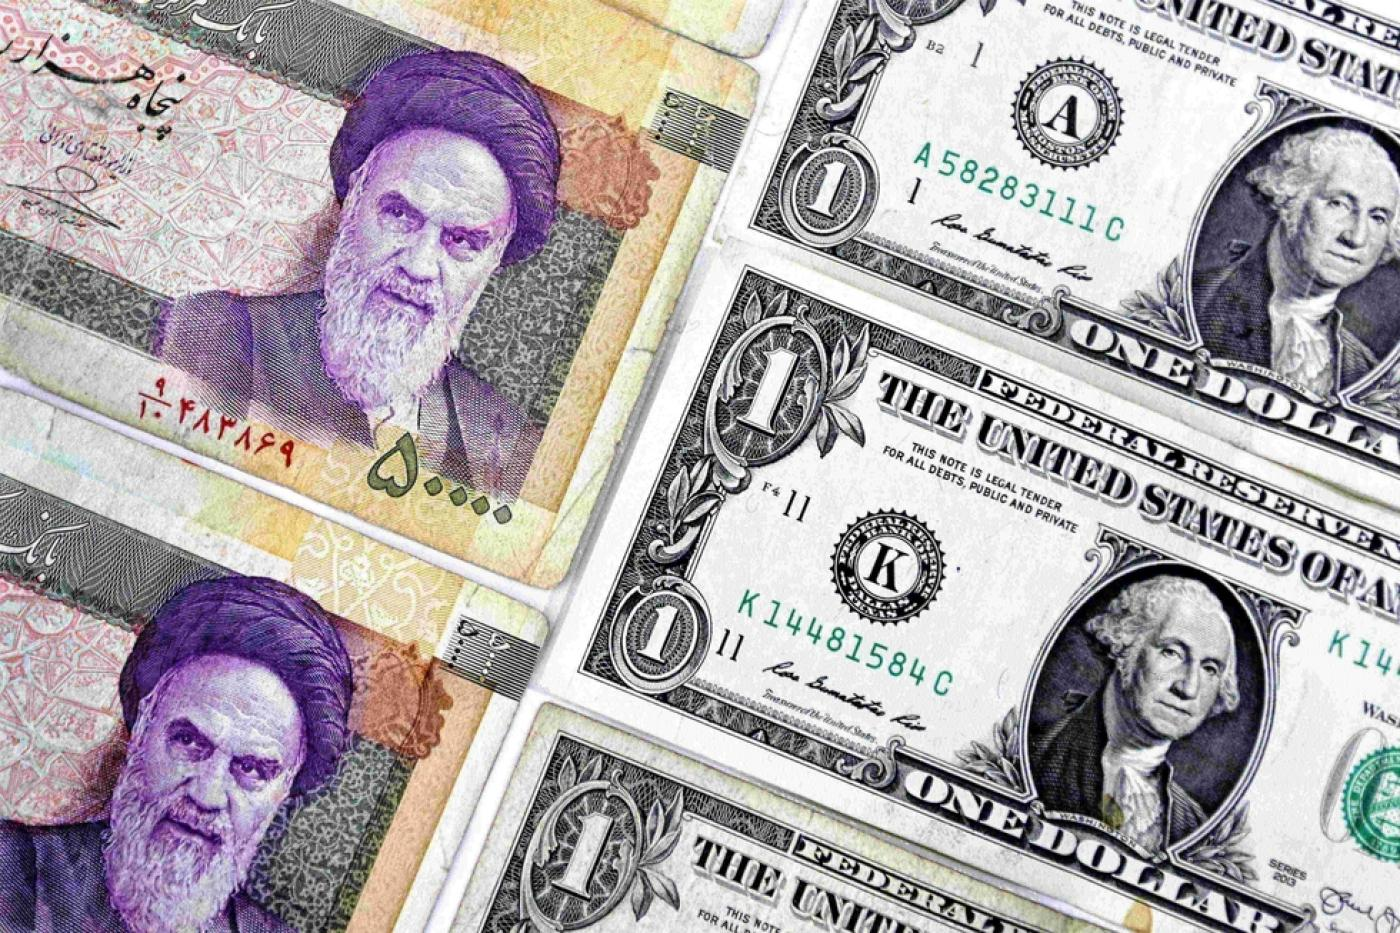 Iran Currency Extends Record Decline As